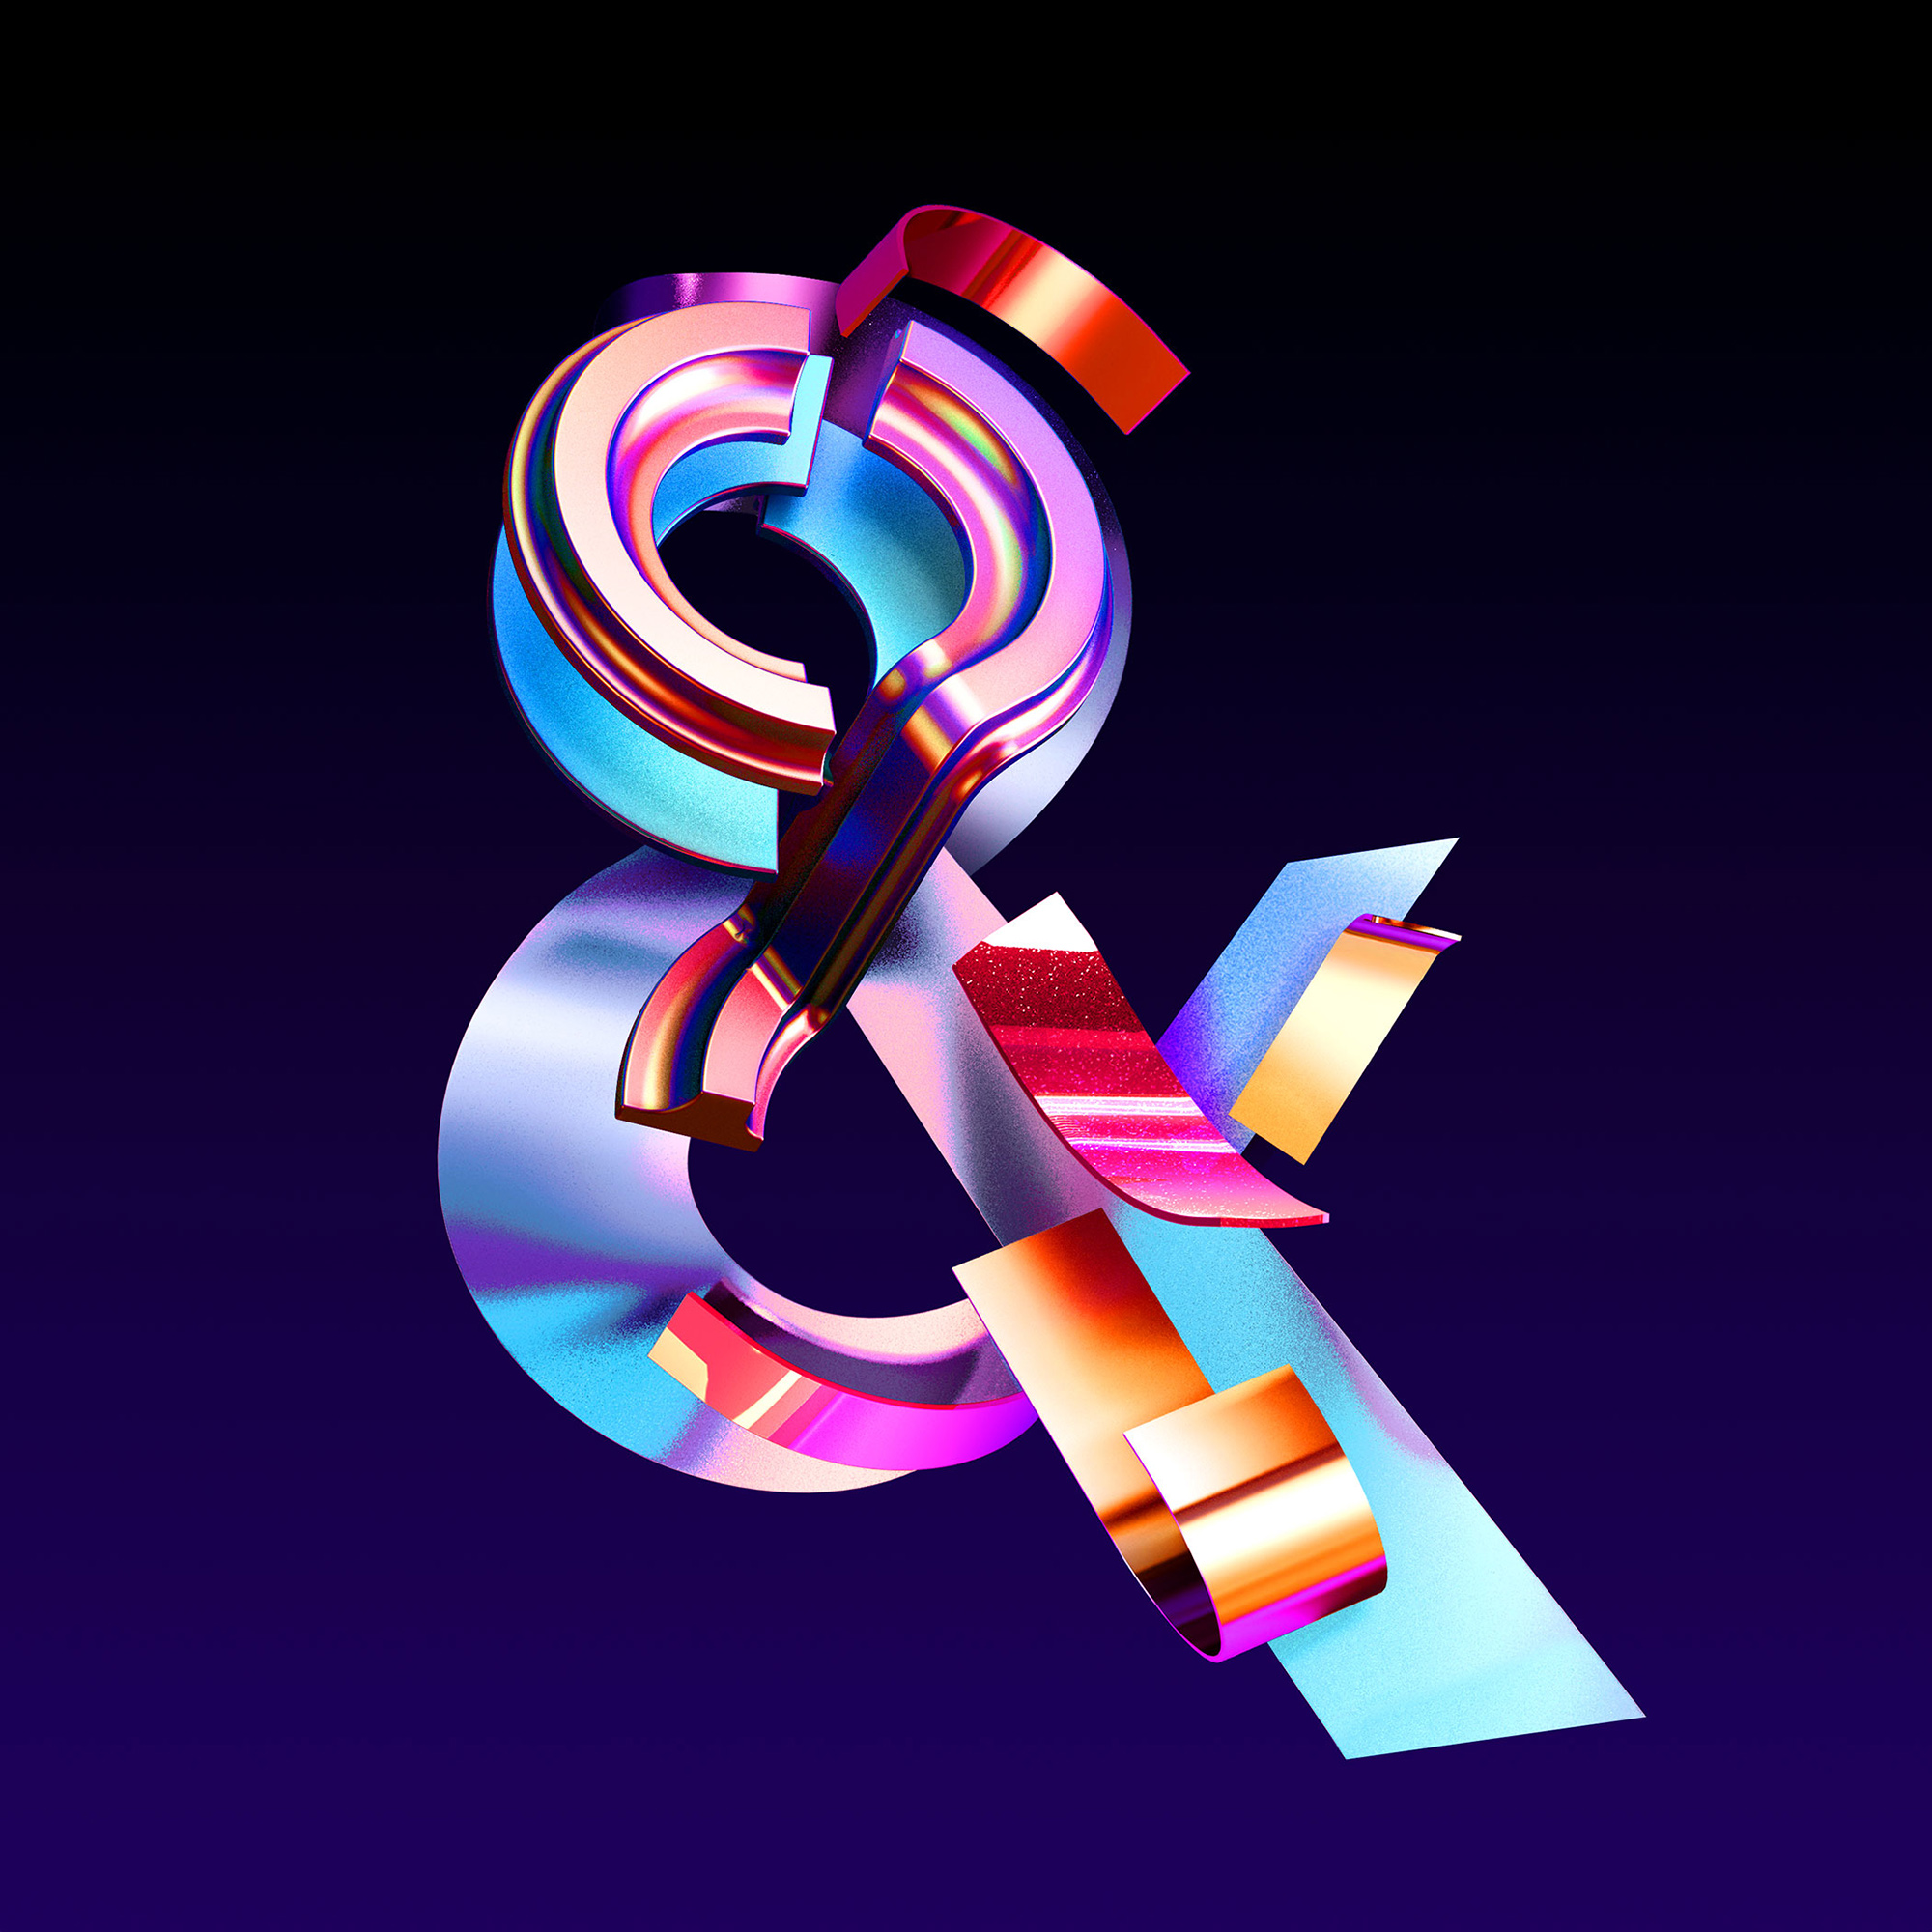 Adobe Ampersands - 3D ampersand lettering visual designs version 1 by Singapore based brand strategy and creative design consultancy, BÜRO UFHO.